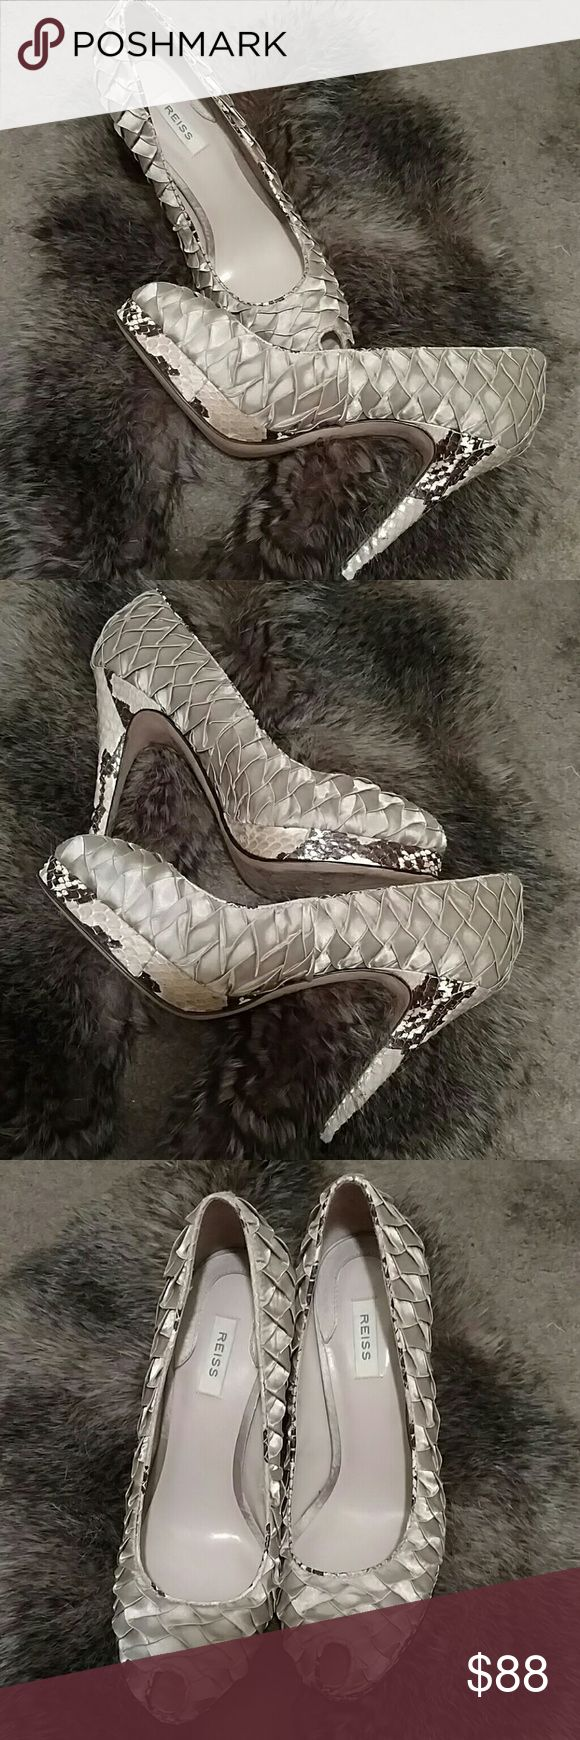 """REISS high heels shoes New quilted REISS shoes, 4.5"""" heels. The sides and heels are snakeskin python leather. Reiss Shoes Heels"""